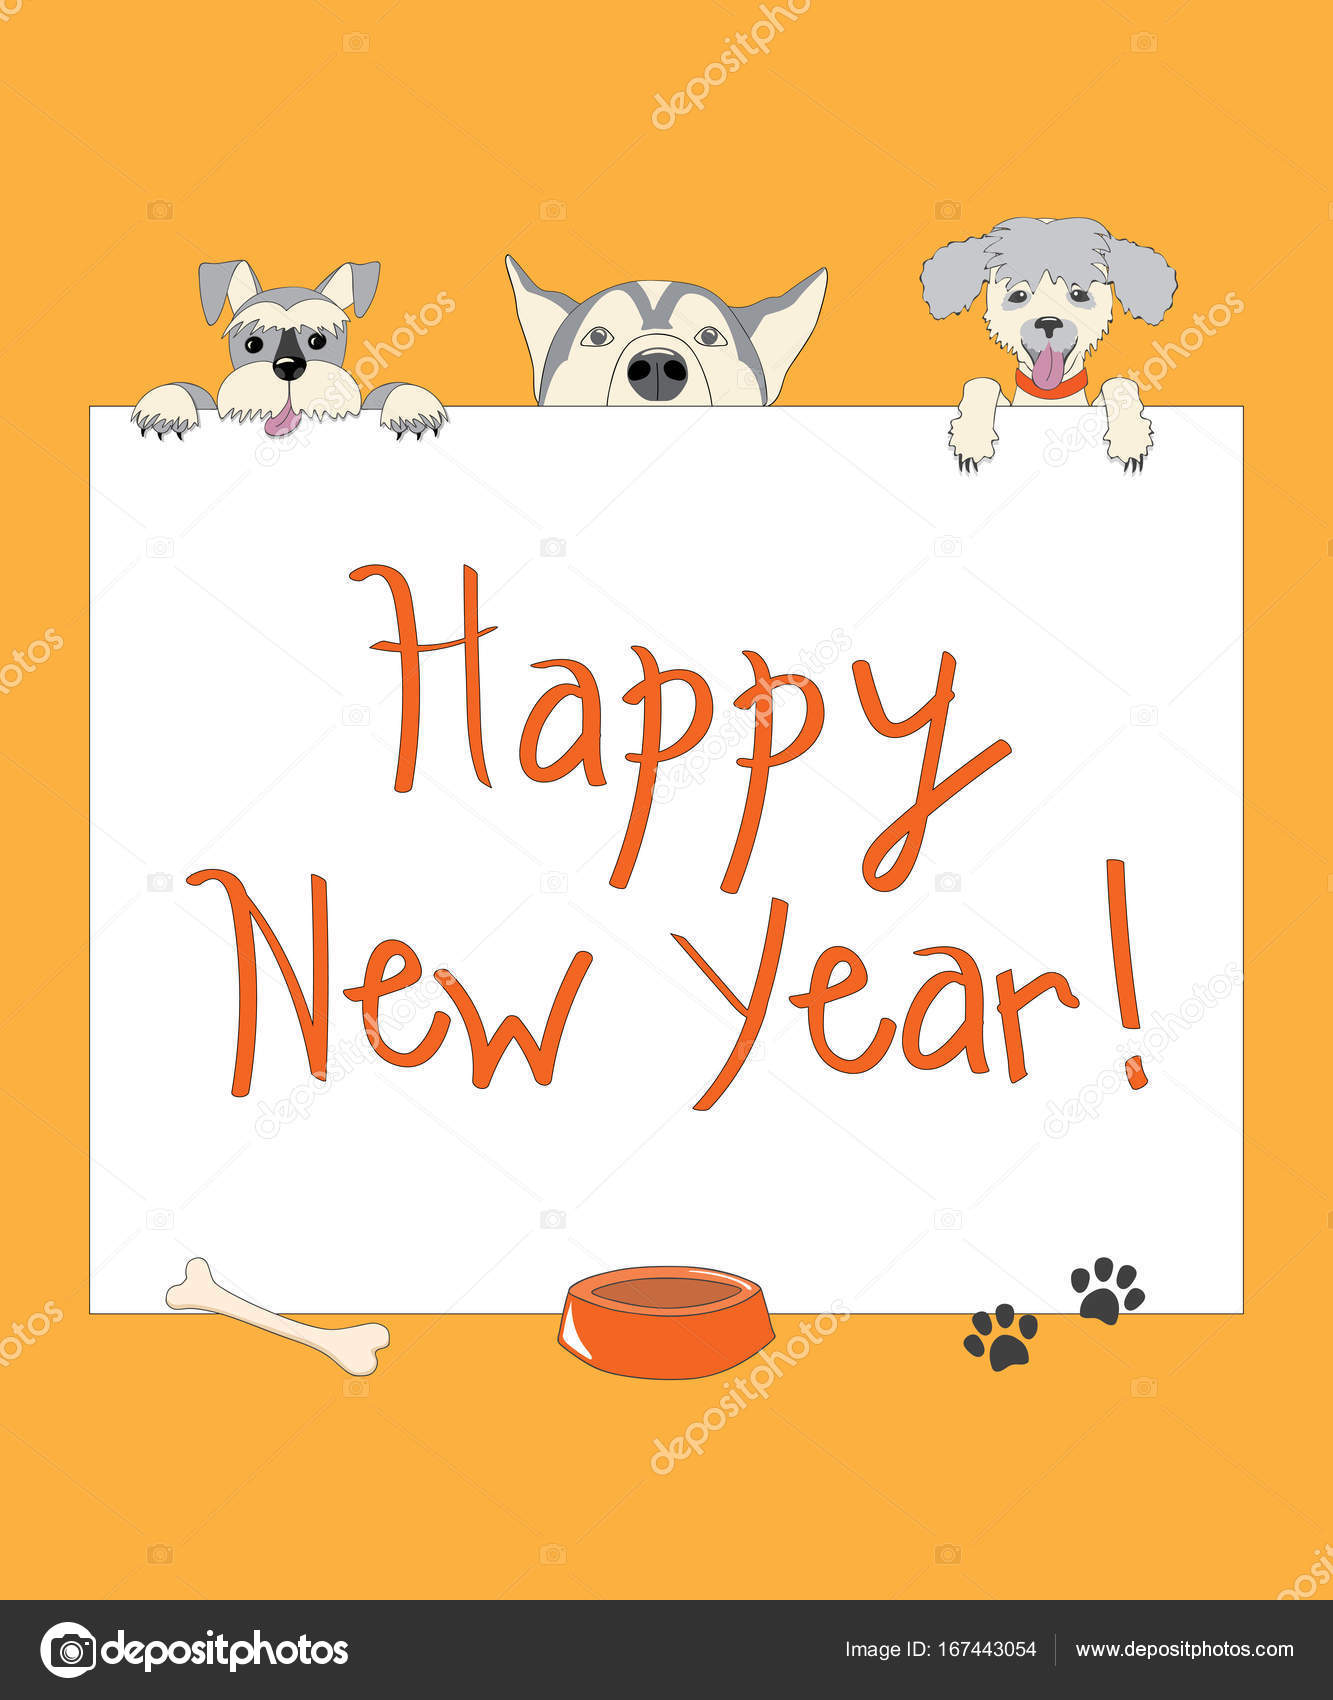 Funny New Year Orange Card With Cartoon Dogs Stock Vector